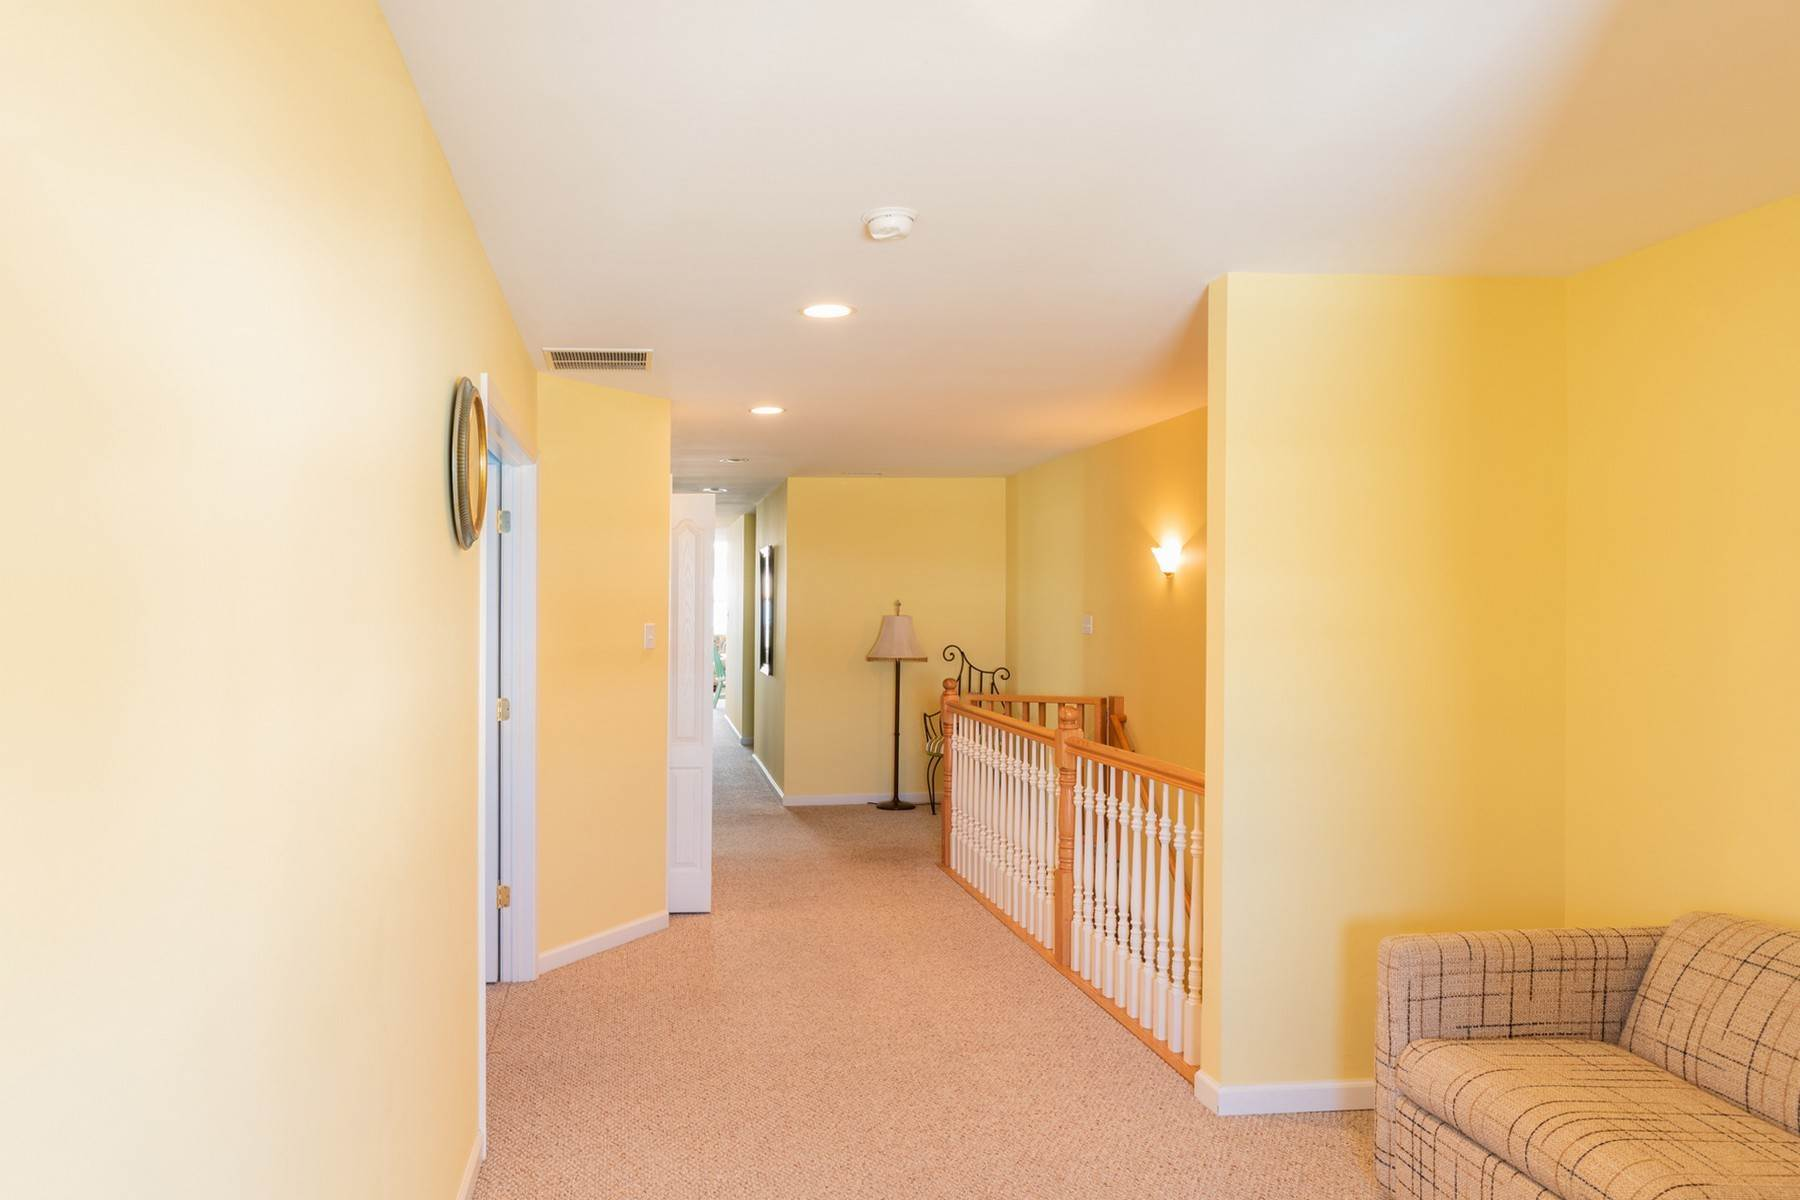 Condominiums for Sale at 948 Asbury Ave Ocean City, New Jersey 08226 United States